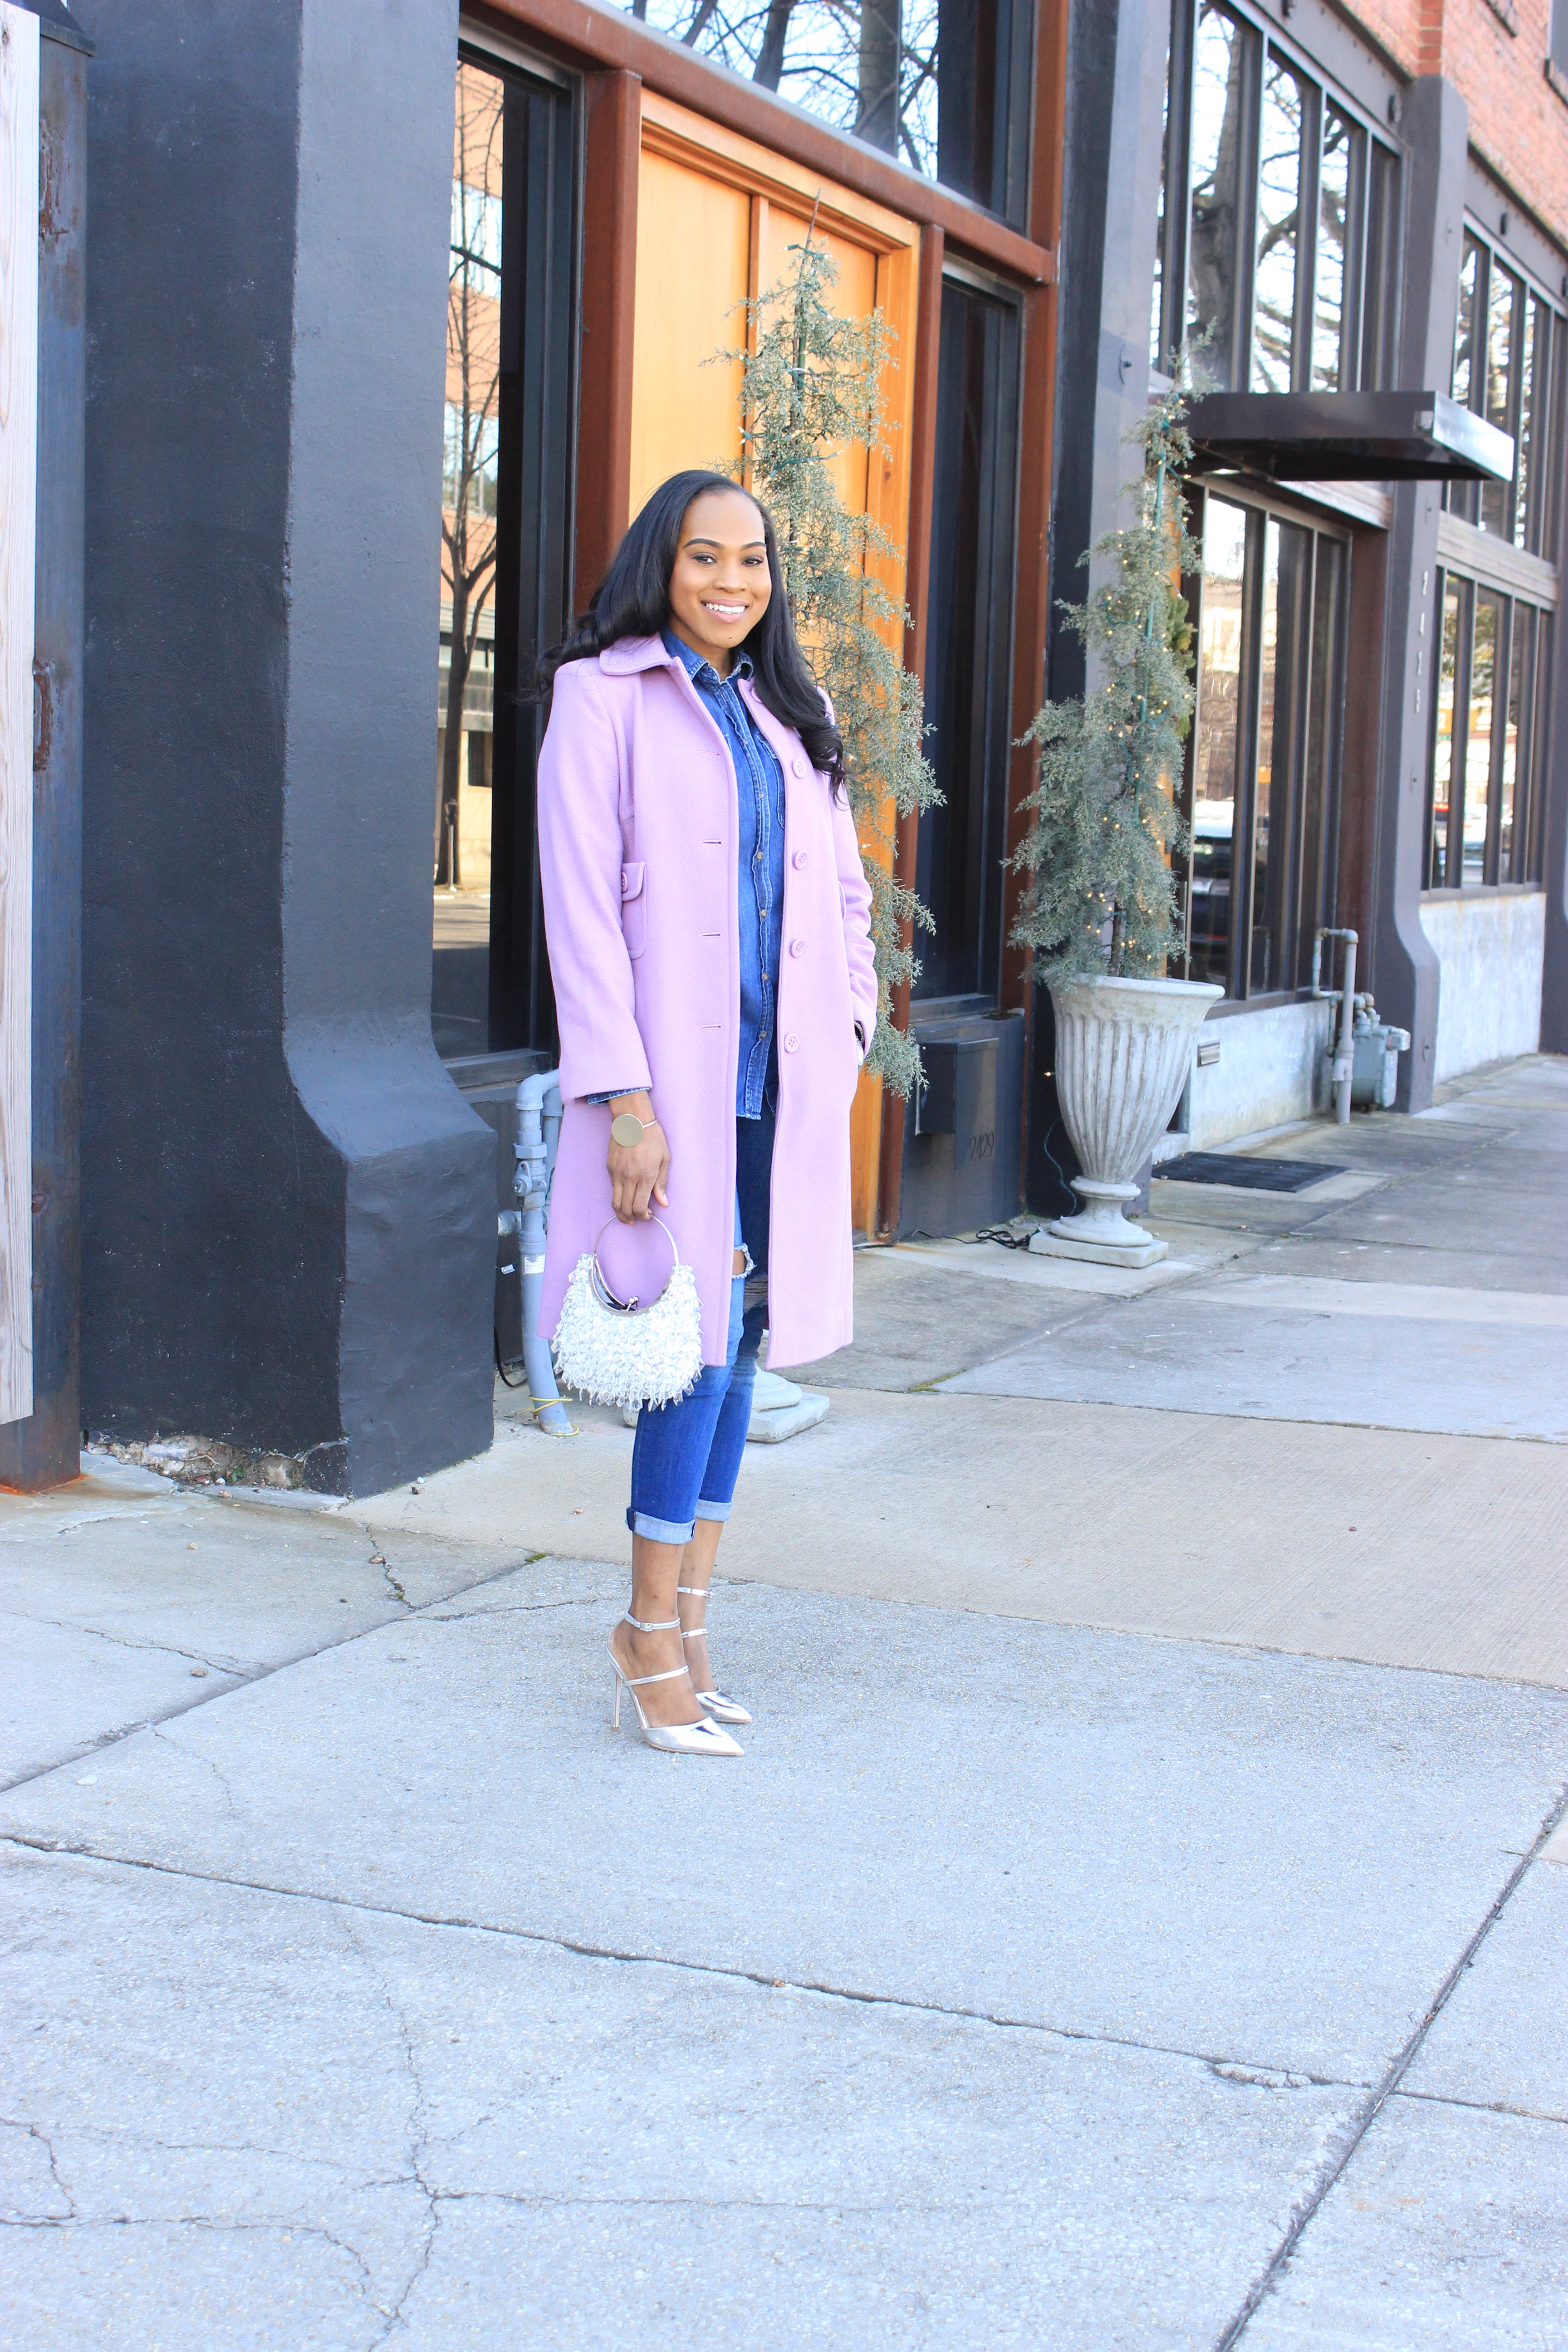 Style-Files-Merona-Denim-Button-front-shirt-distressed-denim- jeans- Lavender-Ninewest-wool-coat-silver-metallic-asos-picture-perfect-pointed-toe-heels-how-to-wear-denim-on-denim-oohlalablog-10